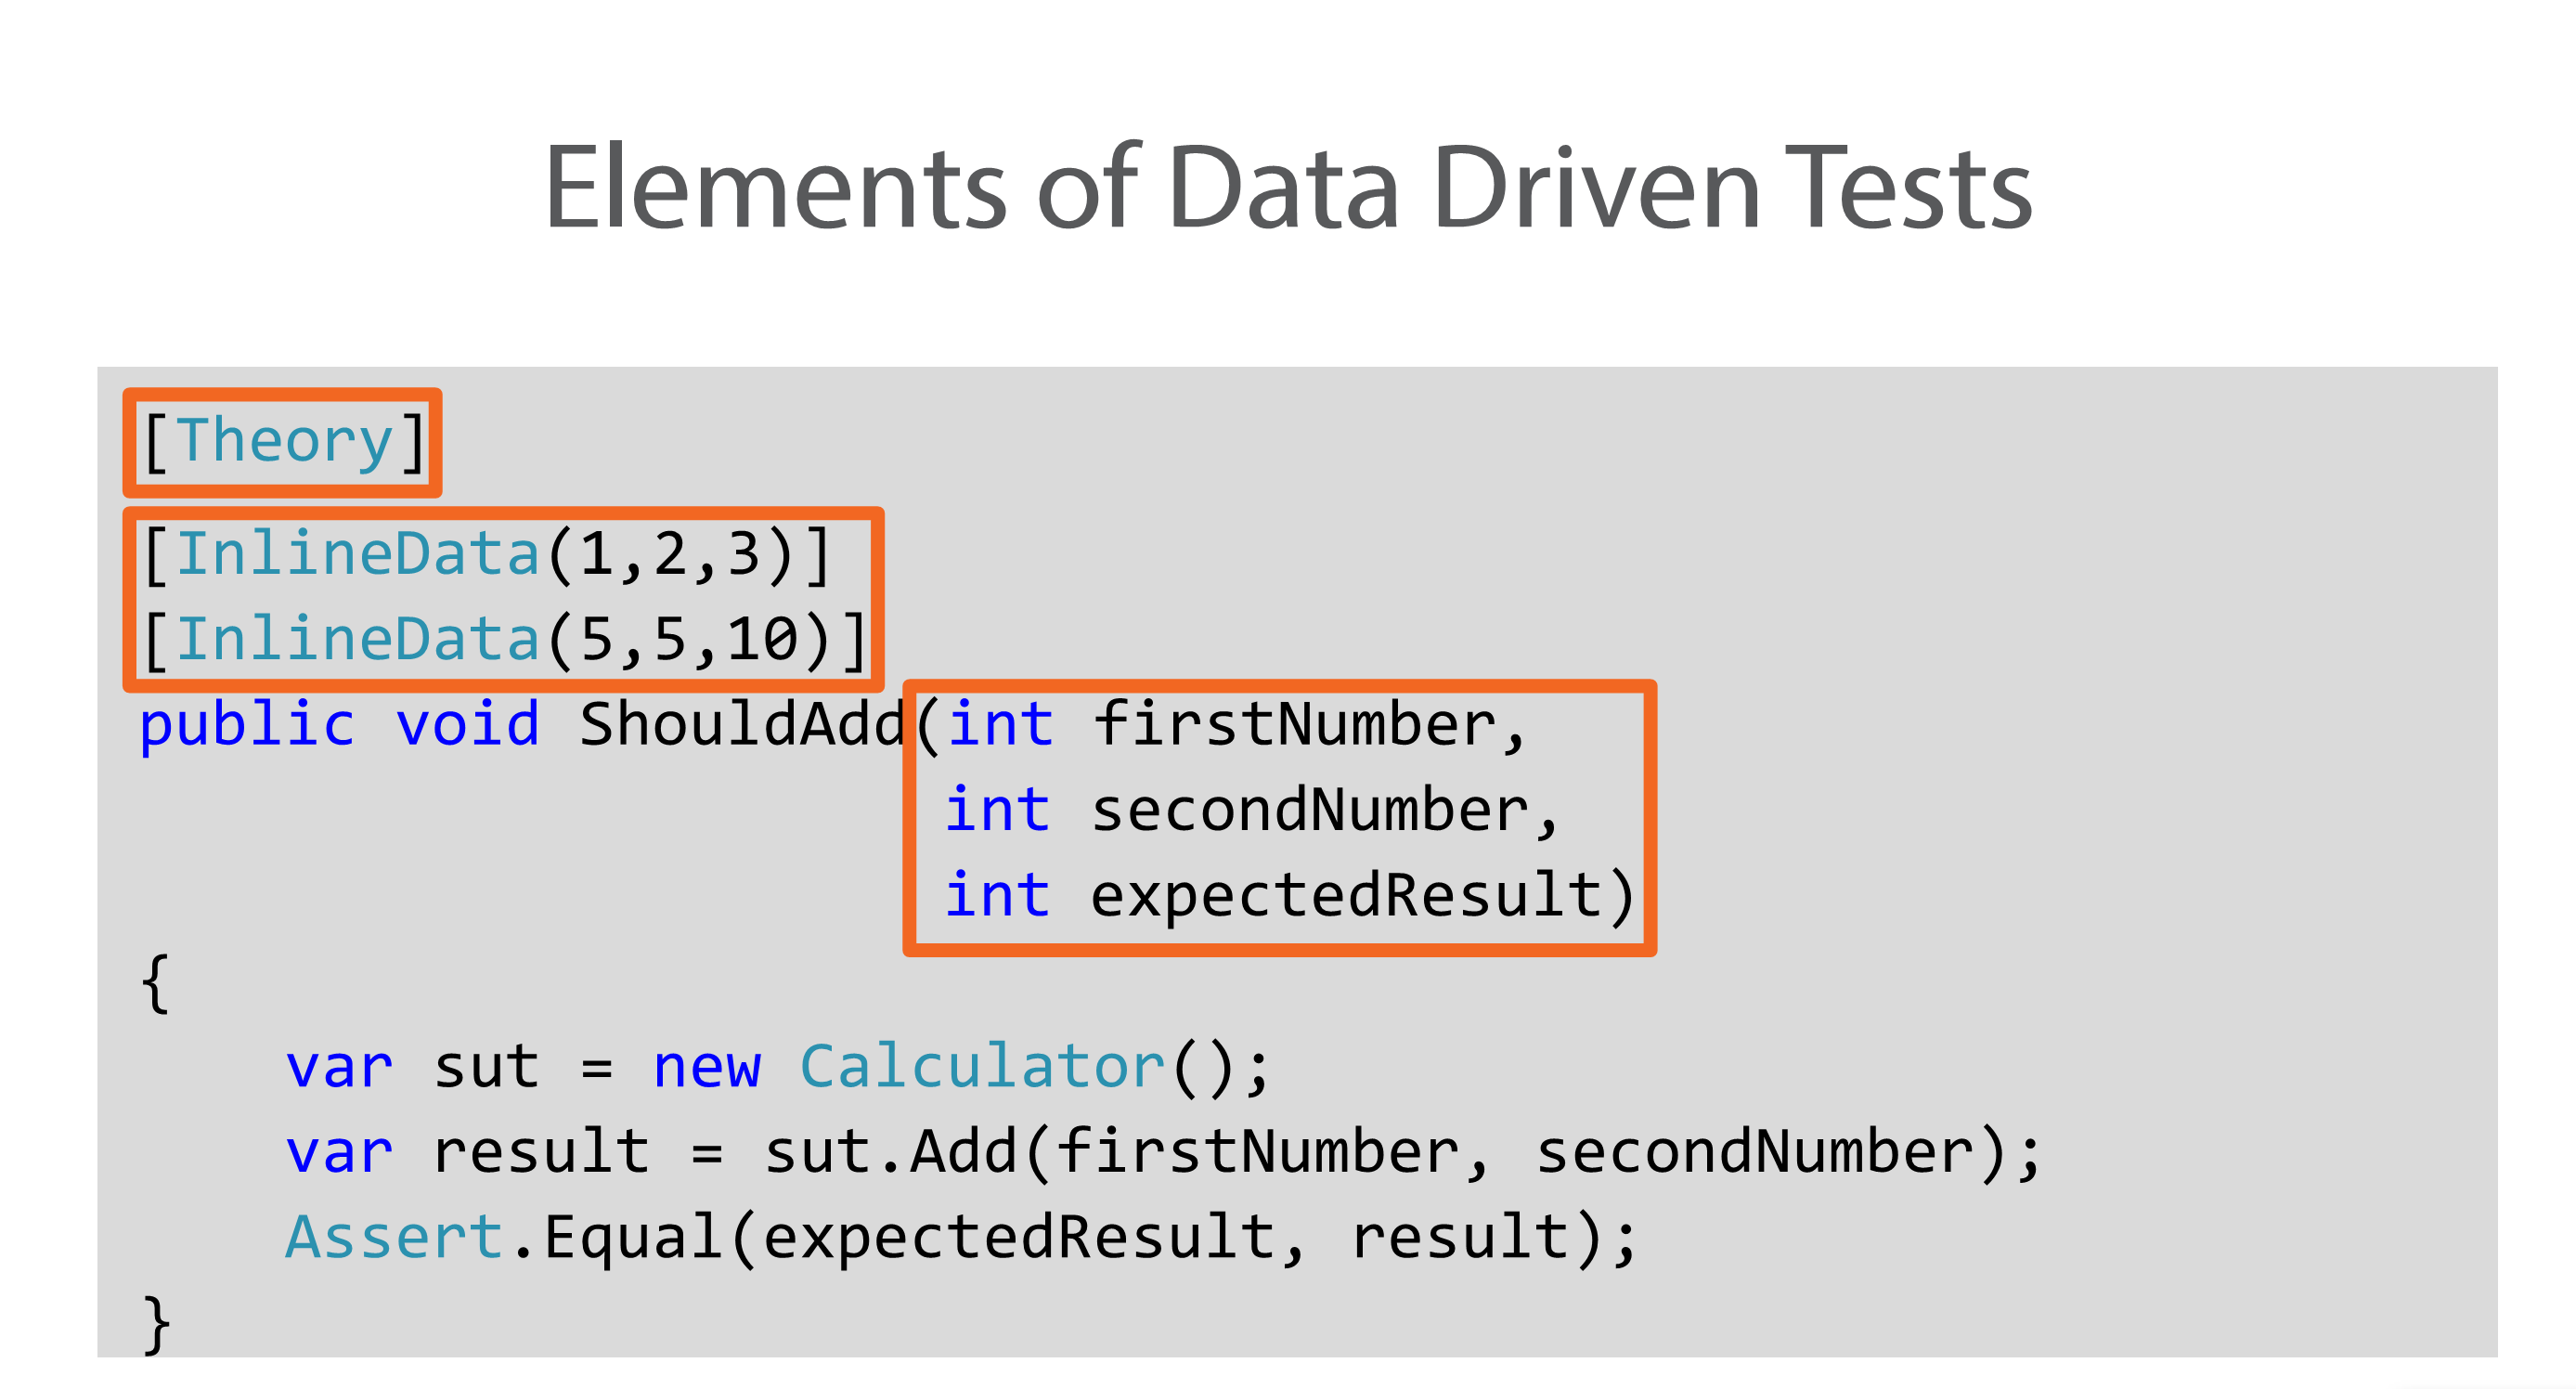 Elements of Data Driven Test